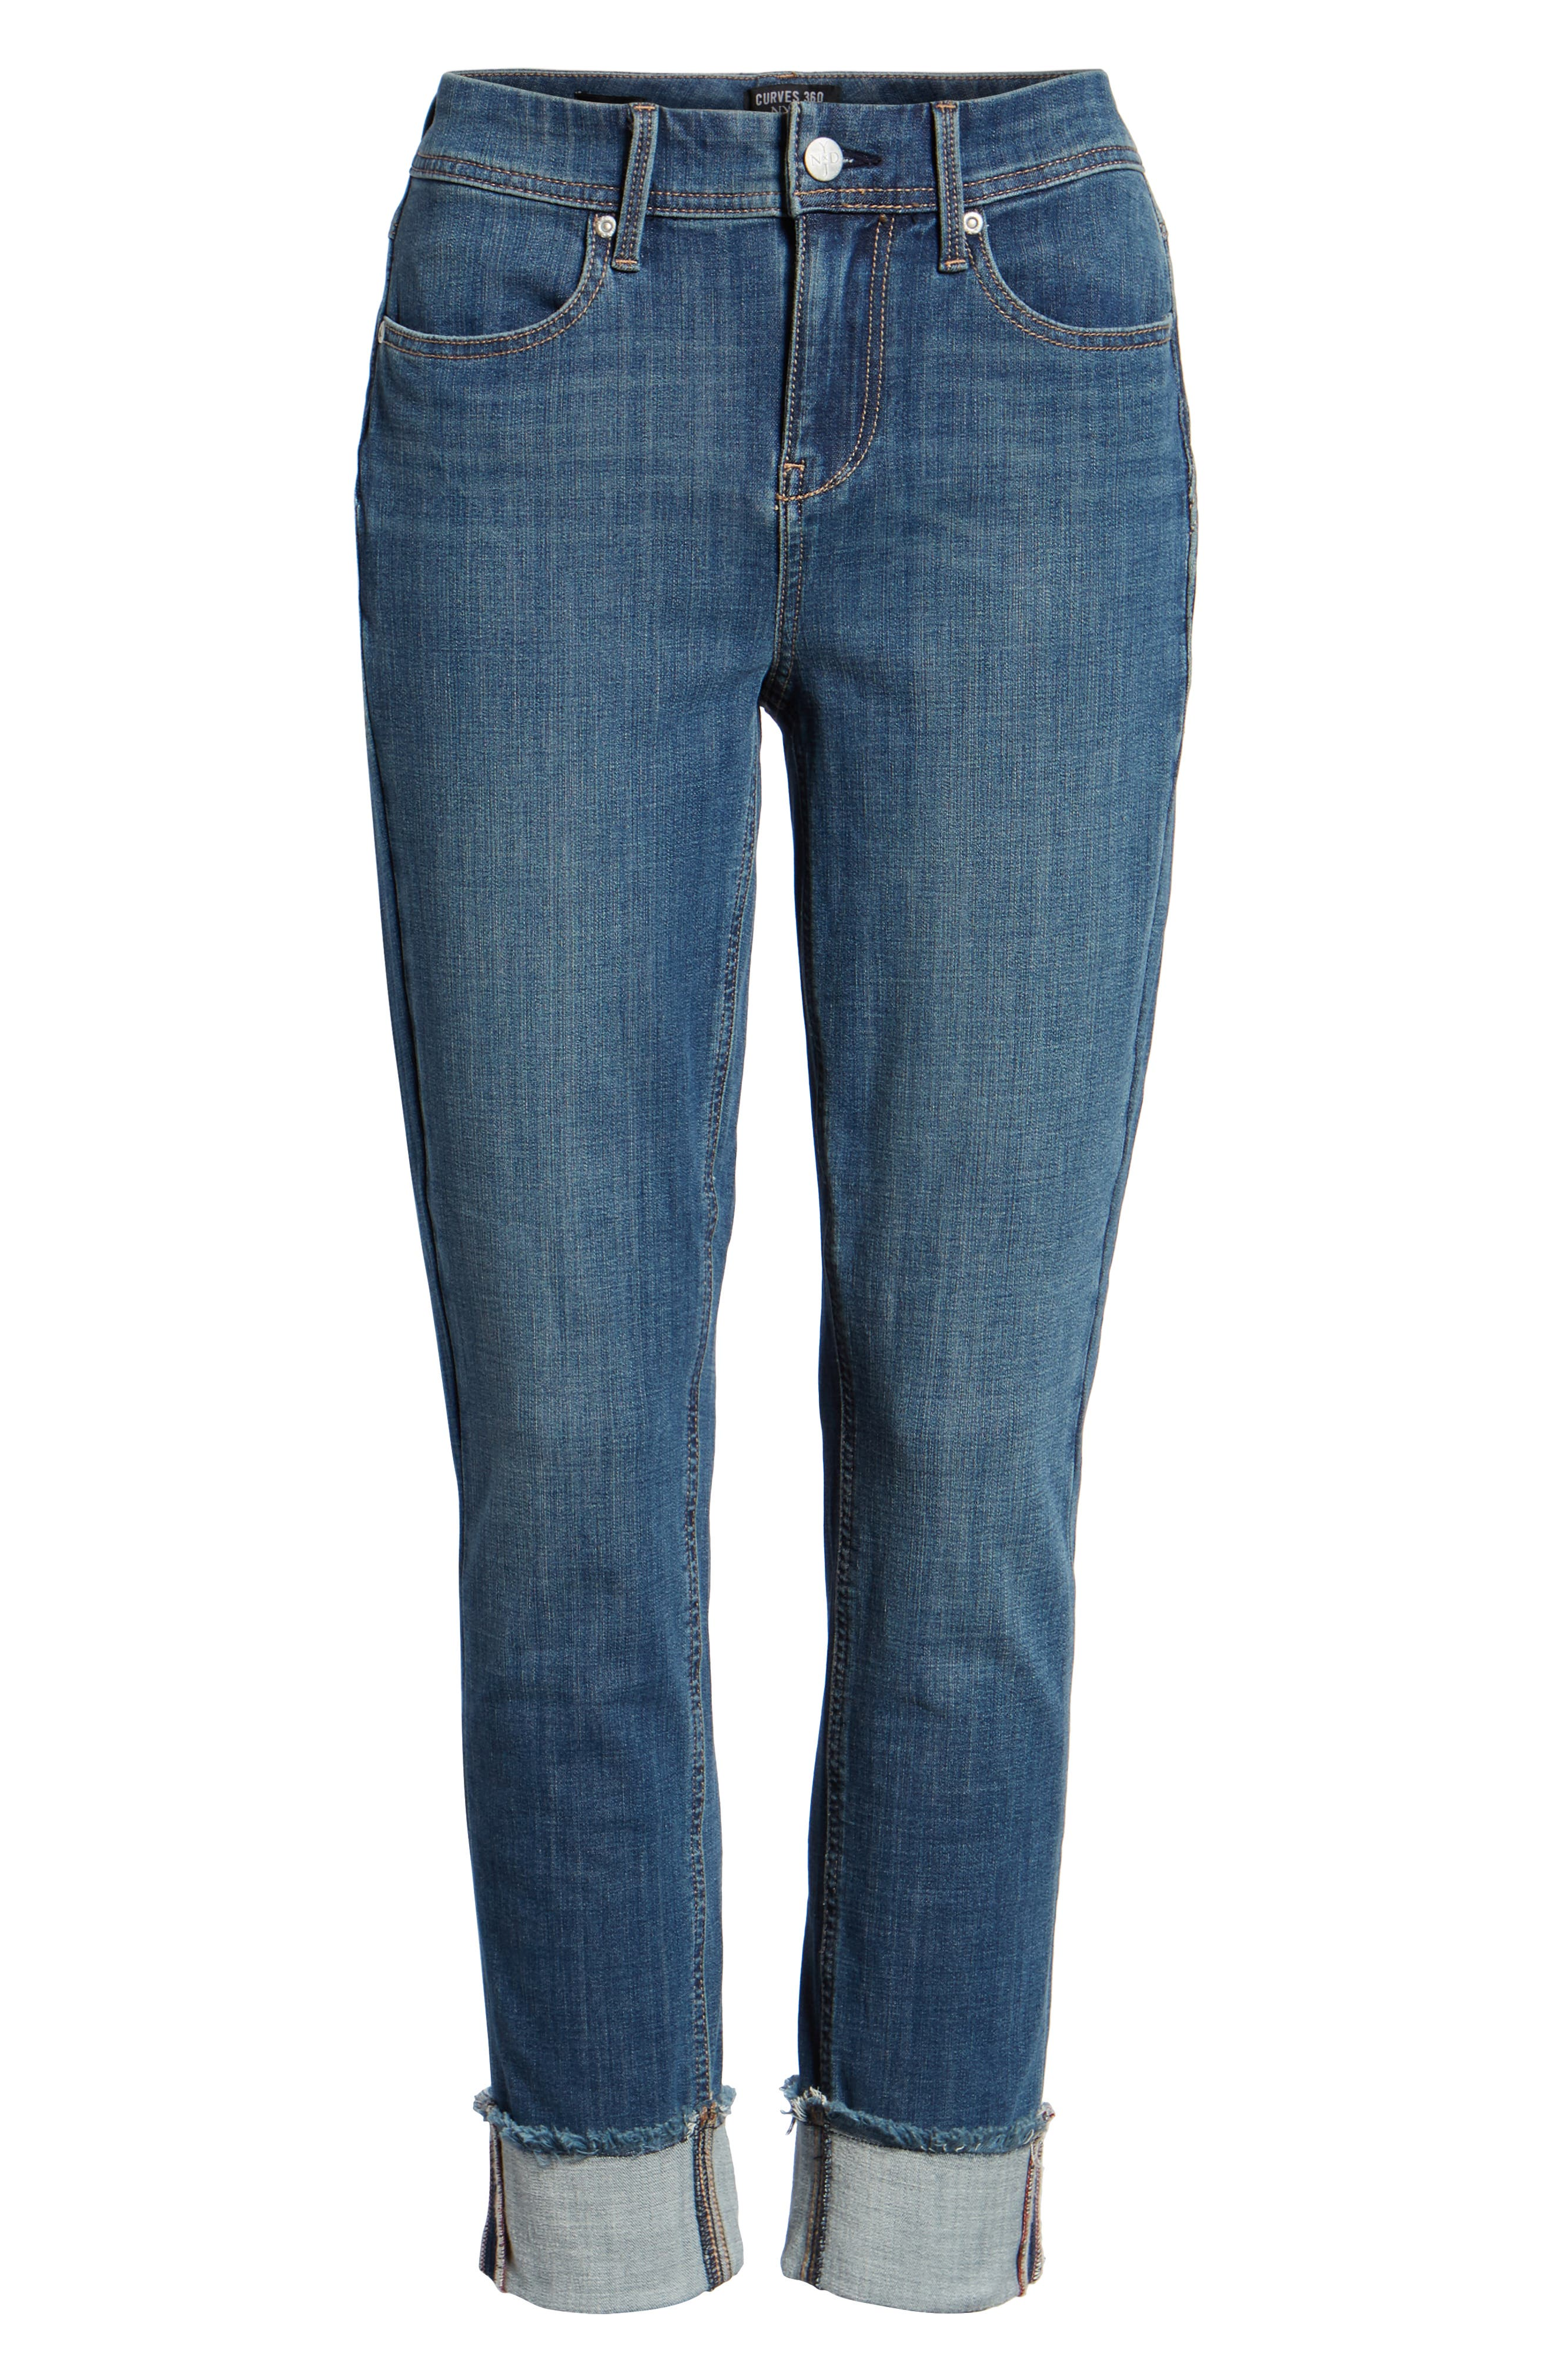 CURVES 360 BY NYDJ,                             Boost Raw Cuff Skinny Jeans,                             Alternate thumbnail 7, color,                             452